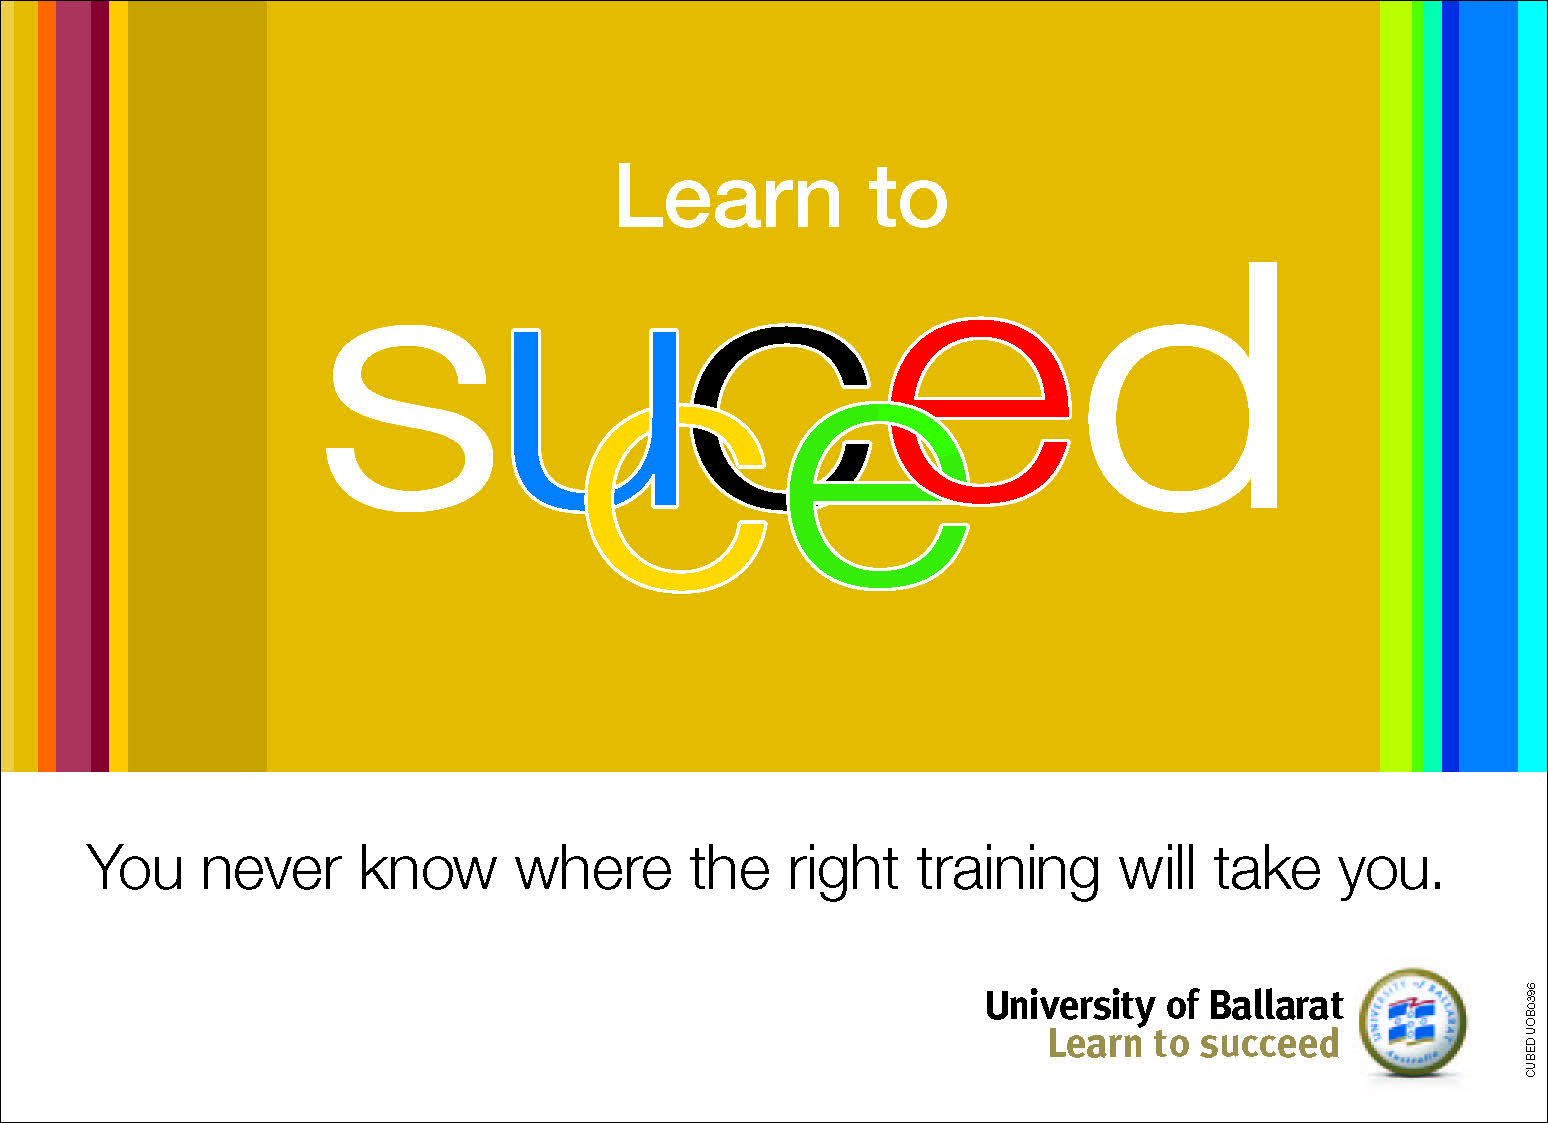 UOB0396_Learn to Succeed Ad_15-02_LR opt2